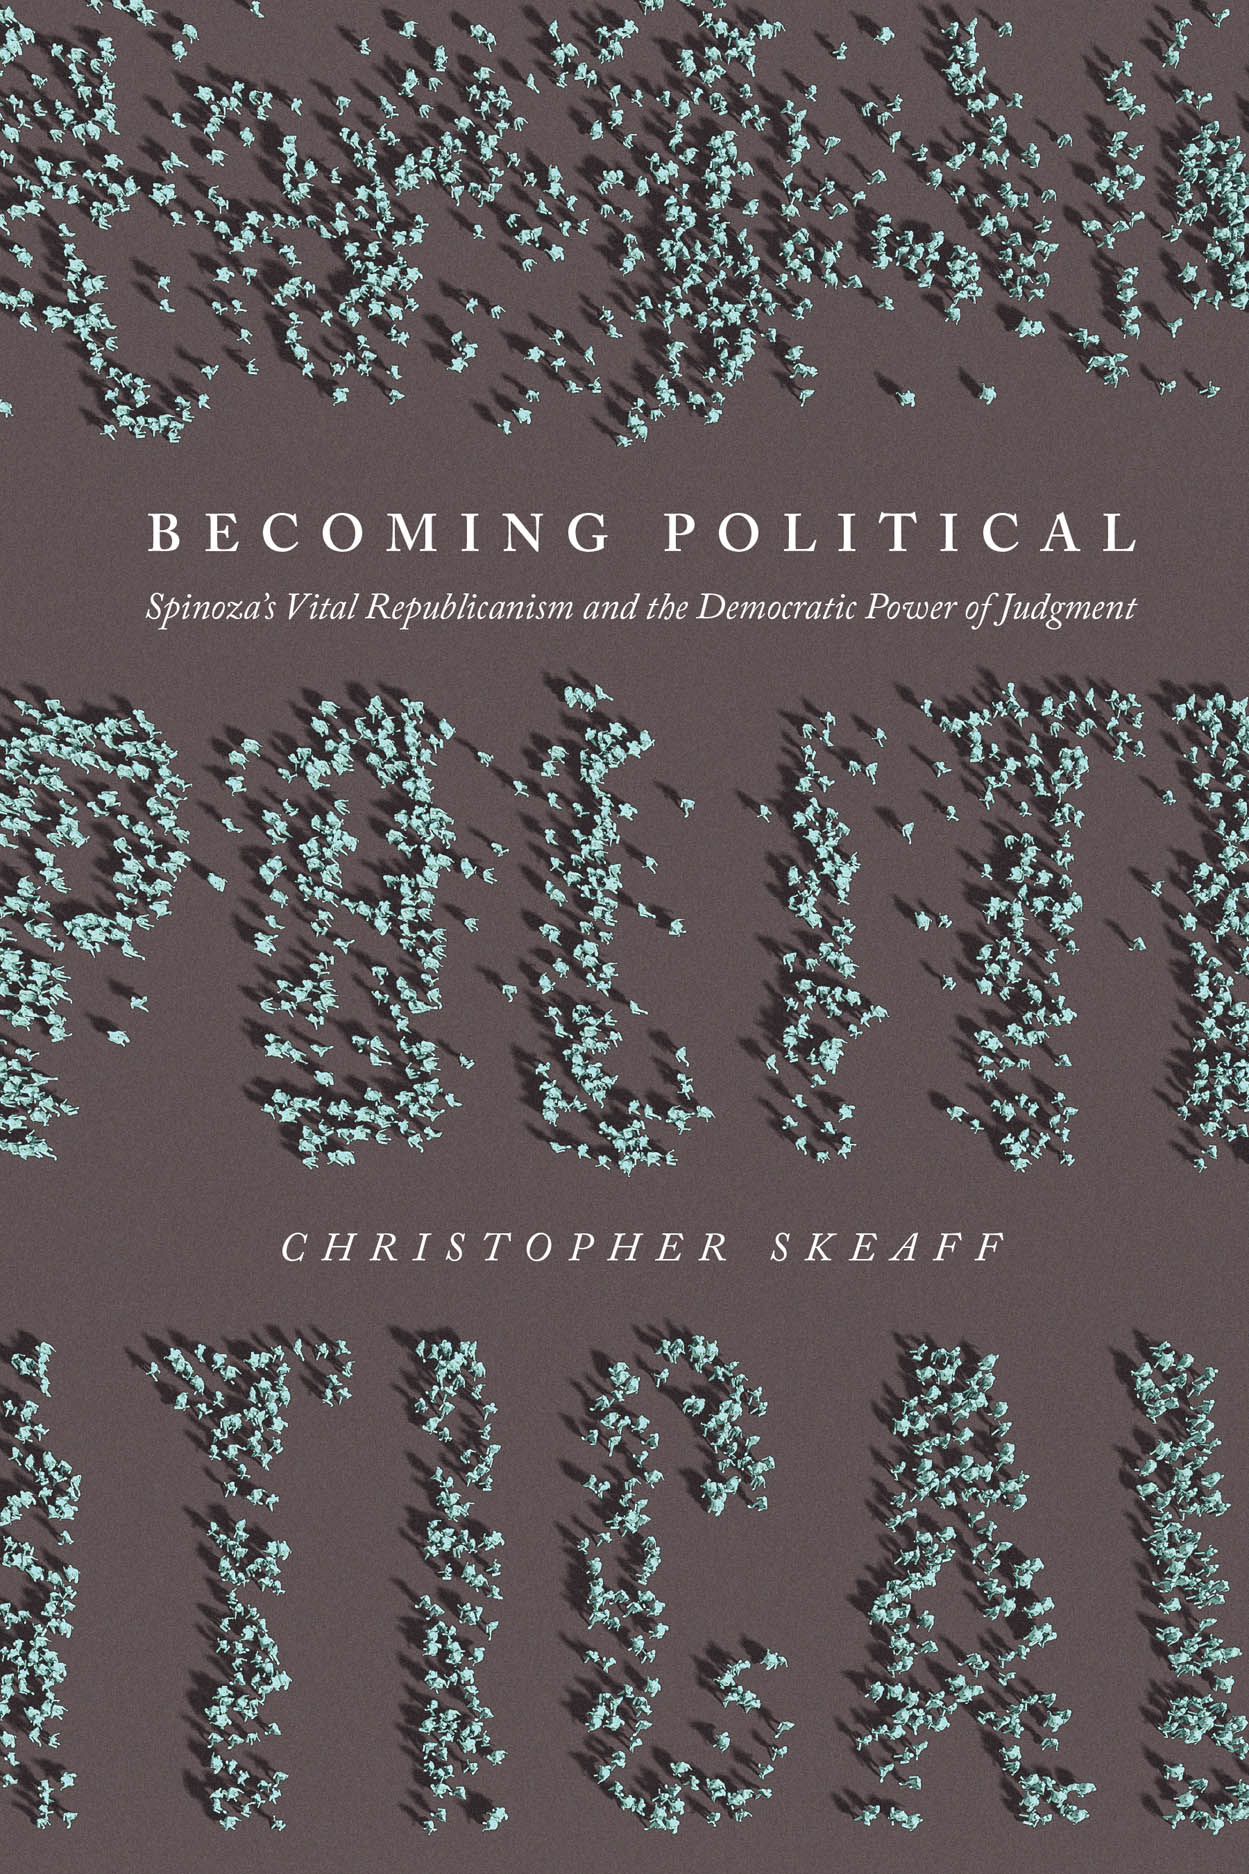 Becoming Political: Spinoza's Vital Republicanism and the Democratic Power of Judgment